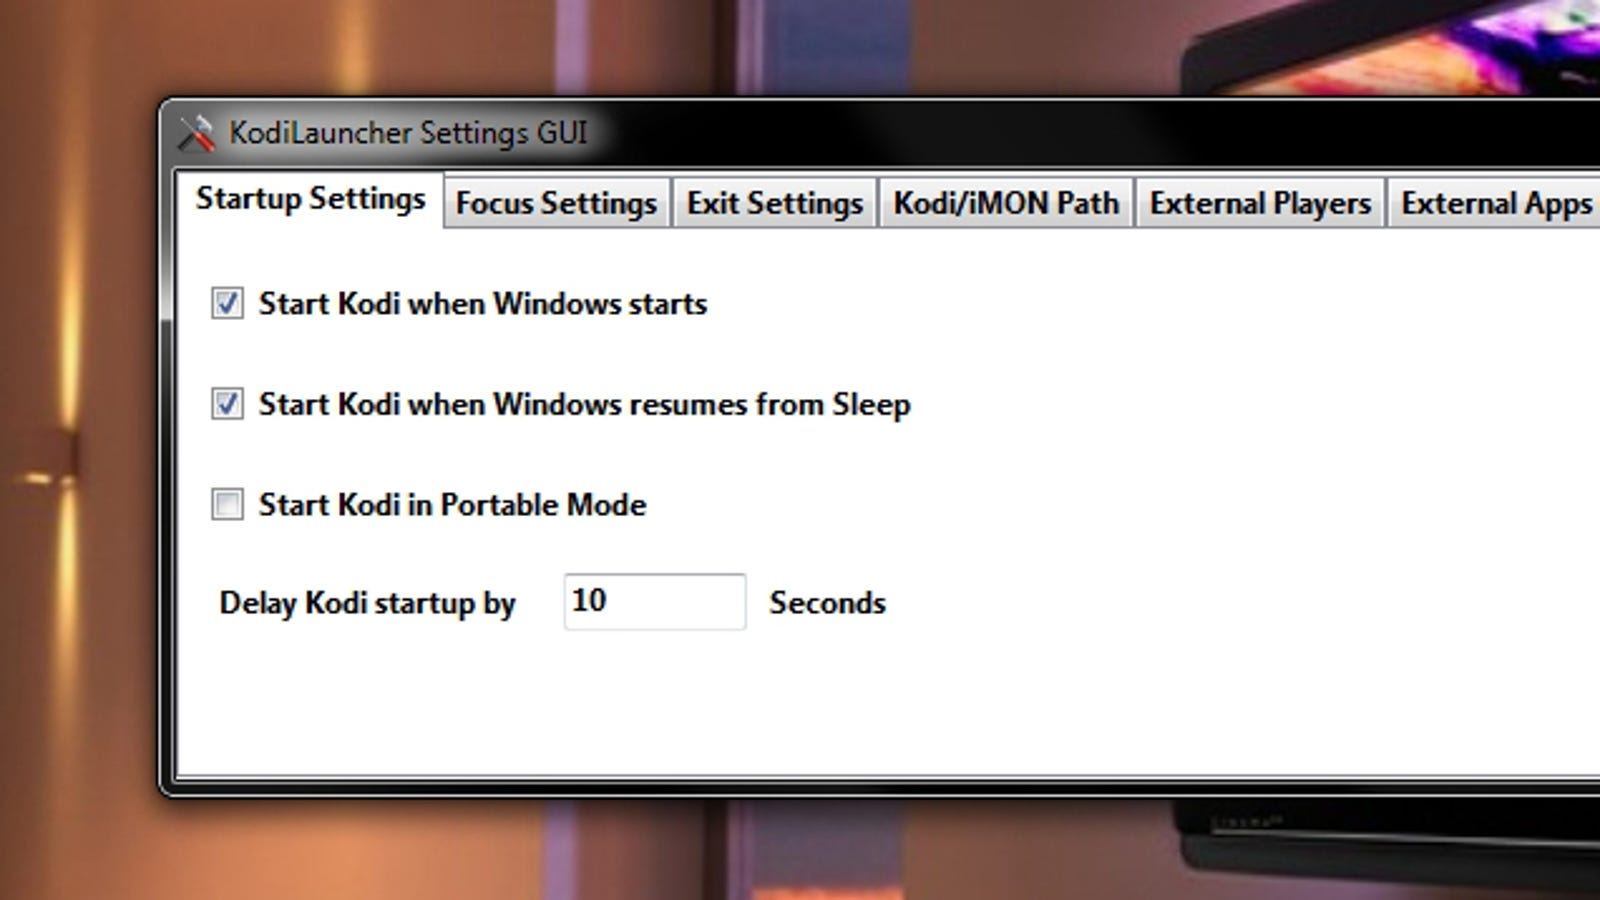 KodiLauncher Stops Kodi from Losing Focus (and Fixes Other Annoyances)